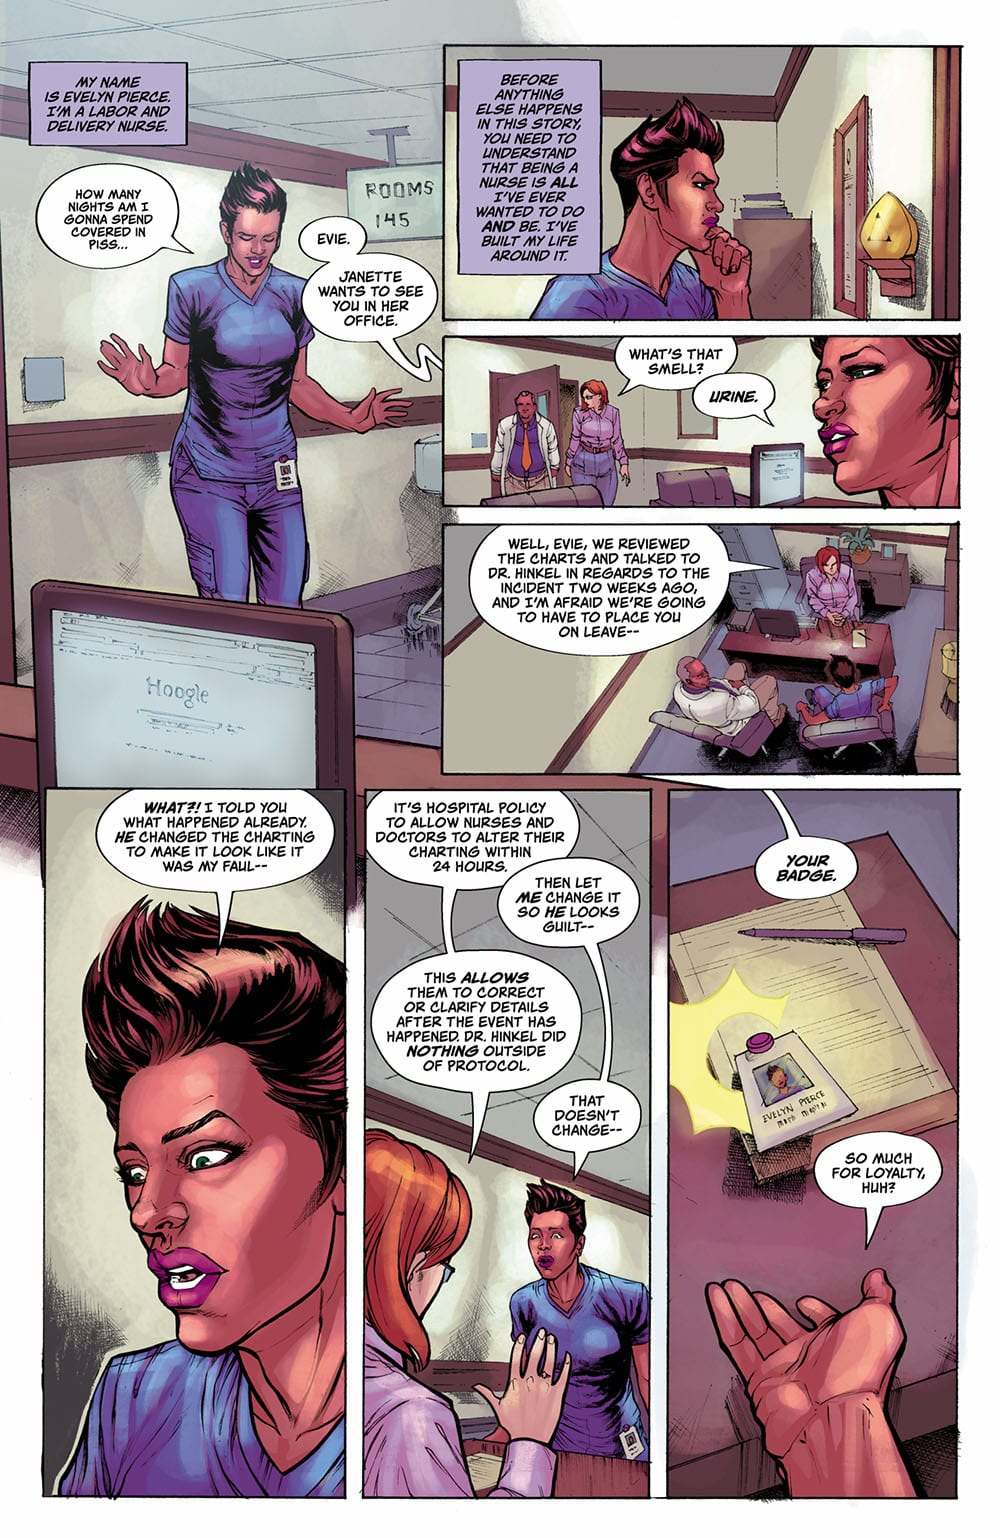 Review: TRIAGE #1 Is Strong & Surreal SciFi via Phillip Sevy 1